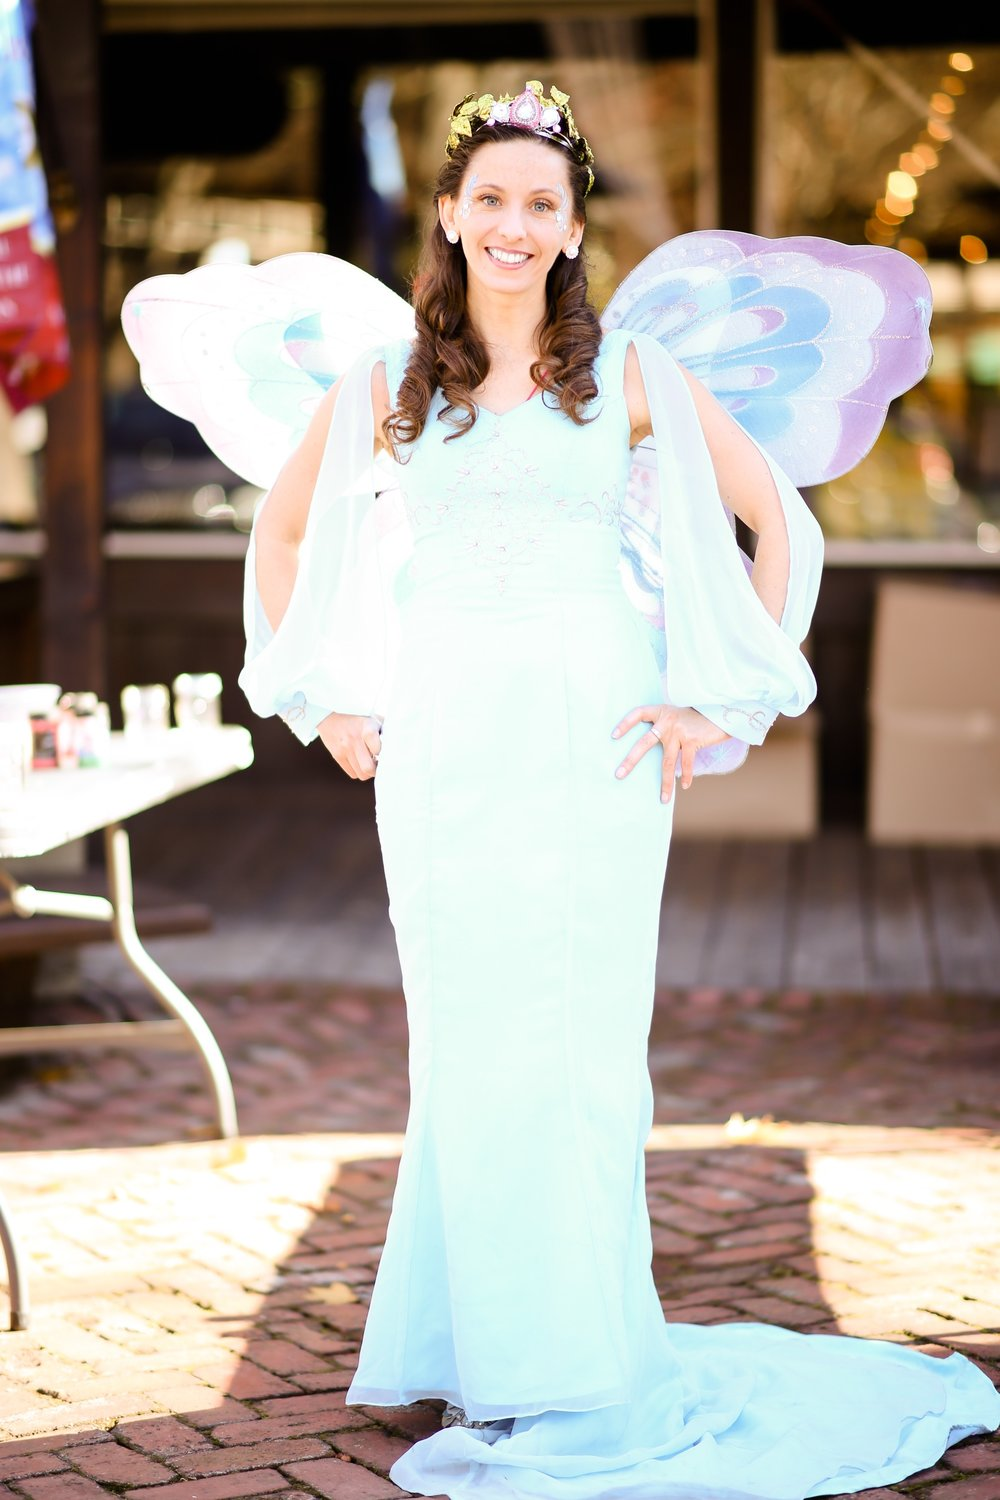 Kris at Livery Danville Christmas Fairy 2013.jpg